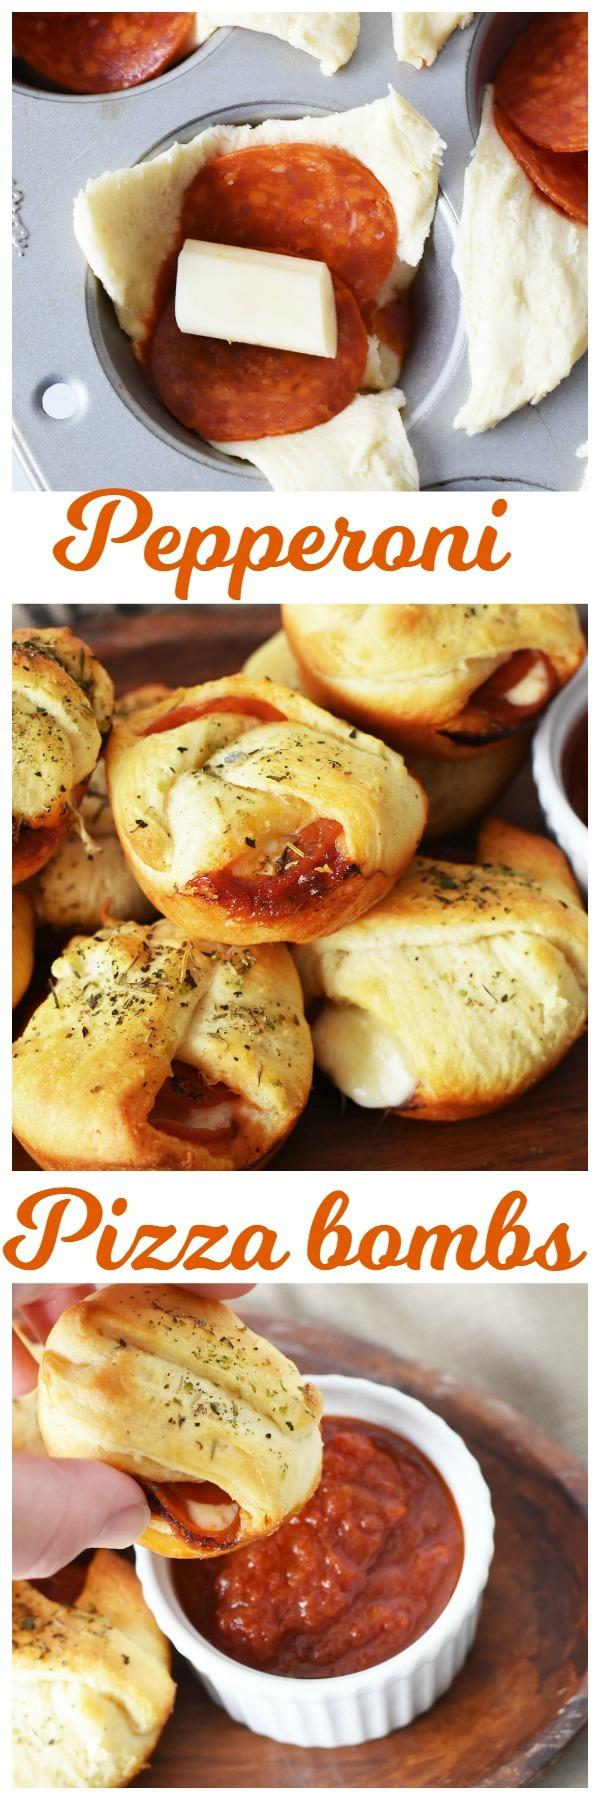 pepperoni-pizza-bombs-pin